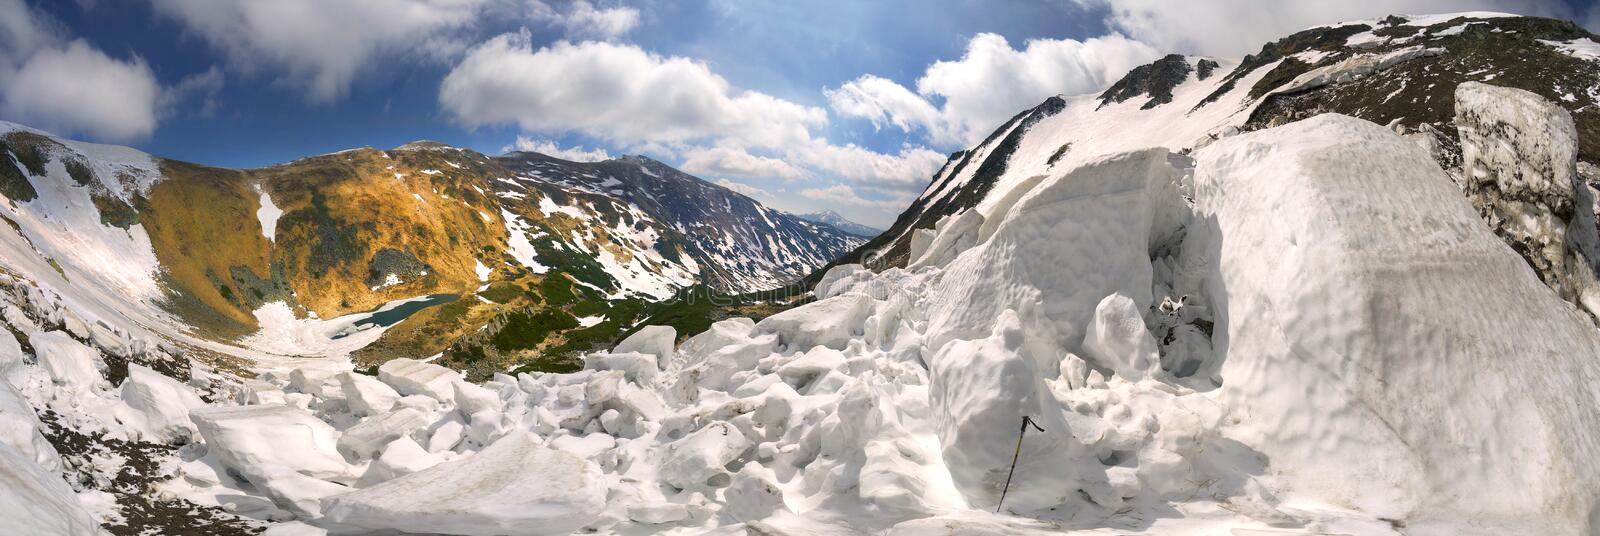 Avalanche in the Carpathians. Powerful avalanche danger in the rural Carpathian Ukraine, which is pulled down a slope of Black Mountain. dangerous for tourists royalty free stock photo